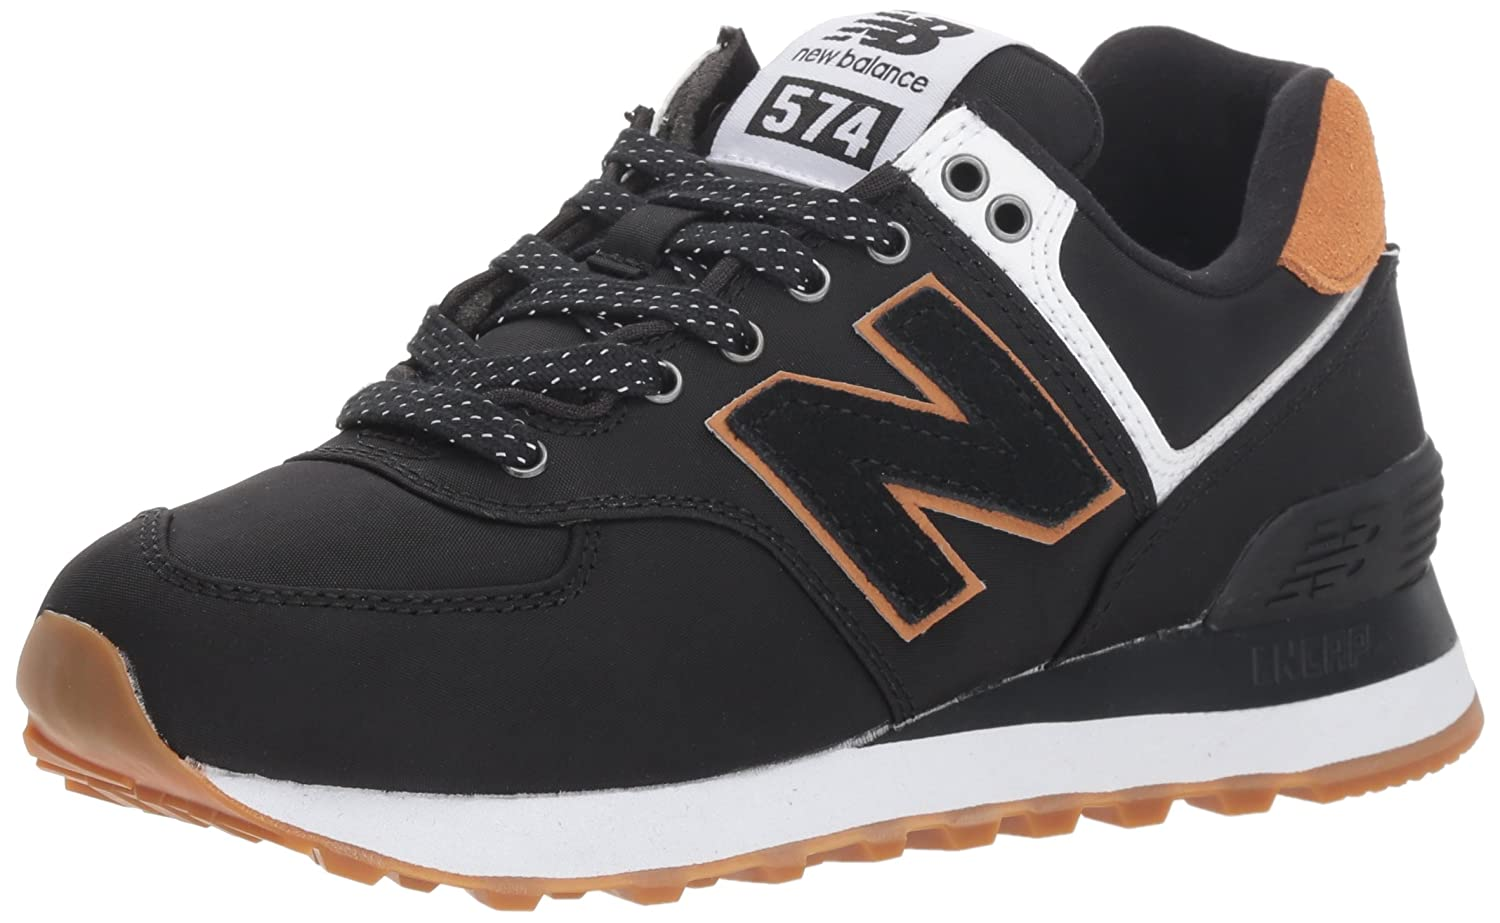 New Balance Women's 574v2 Sneaker B075R7JPPG 7 D US|Black